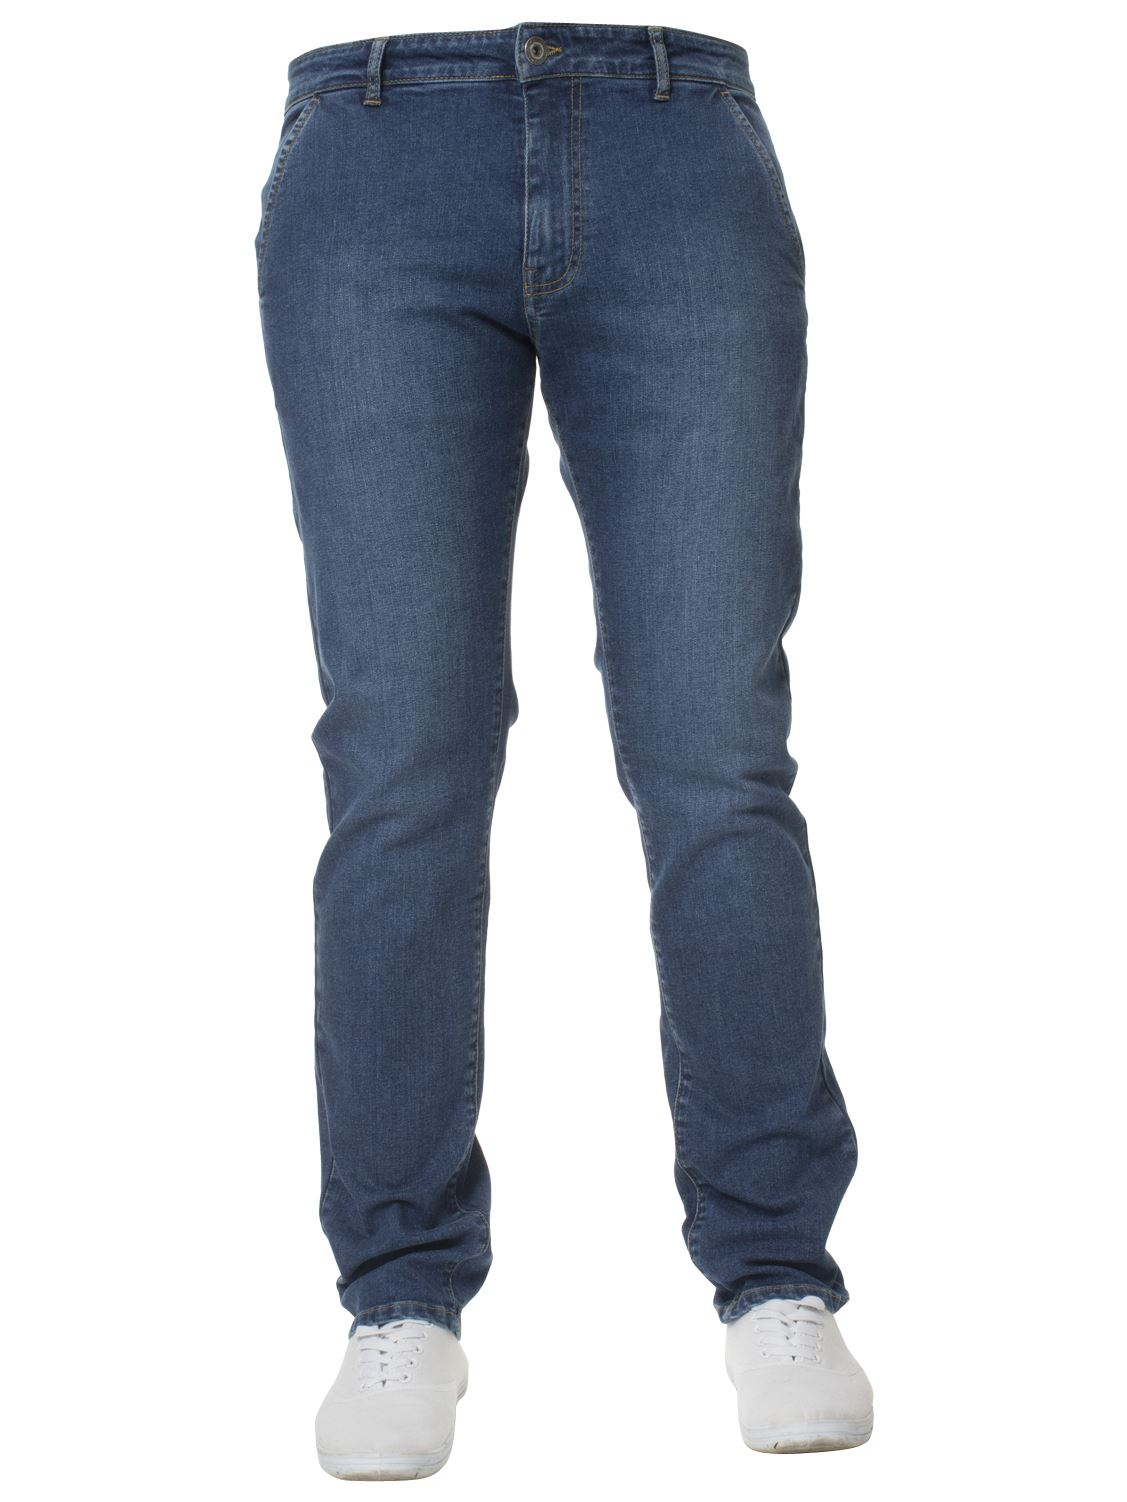 New-Mens-Enzo-Jeans-Denim-Chinos-Skinny-Slim-Fit-Super-Stretch-Trousers-Pants thumbnail 5